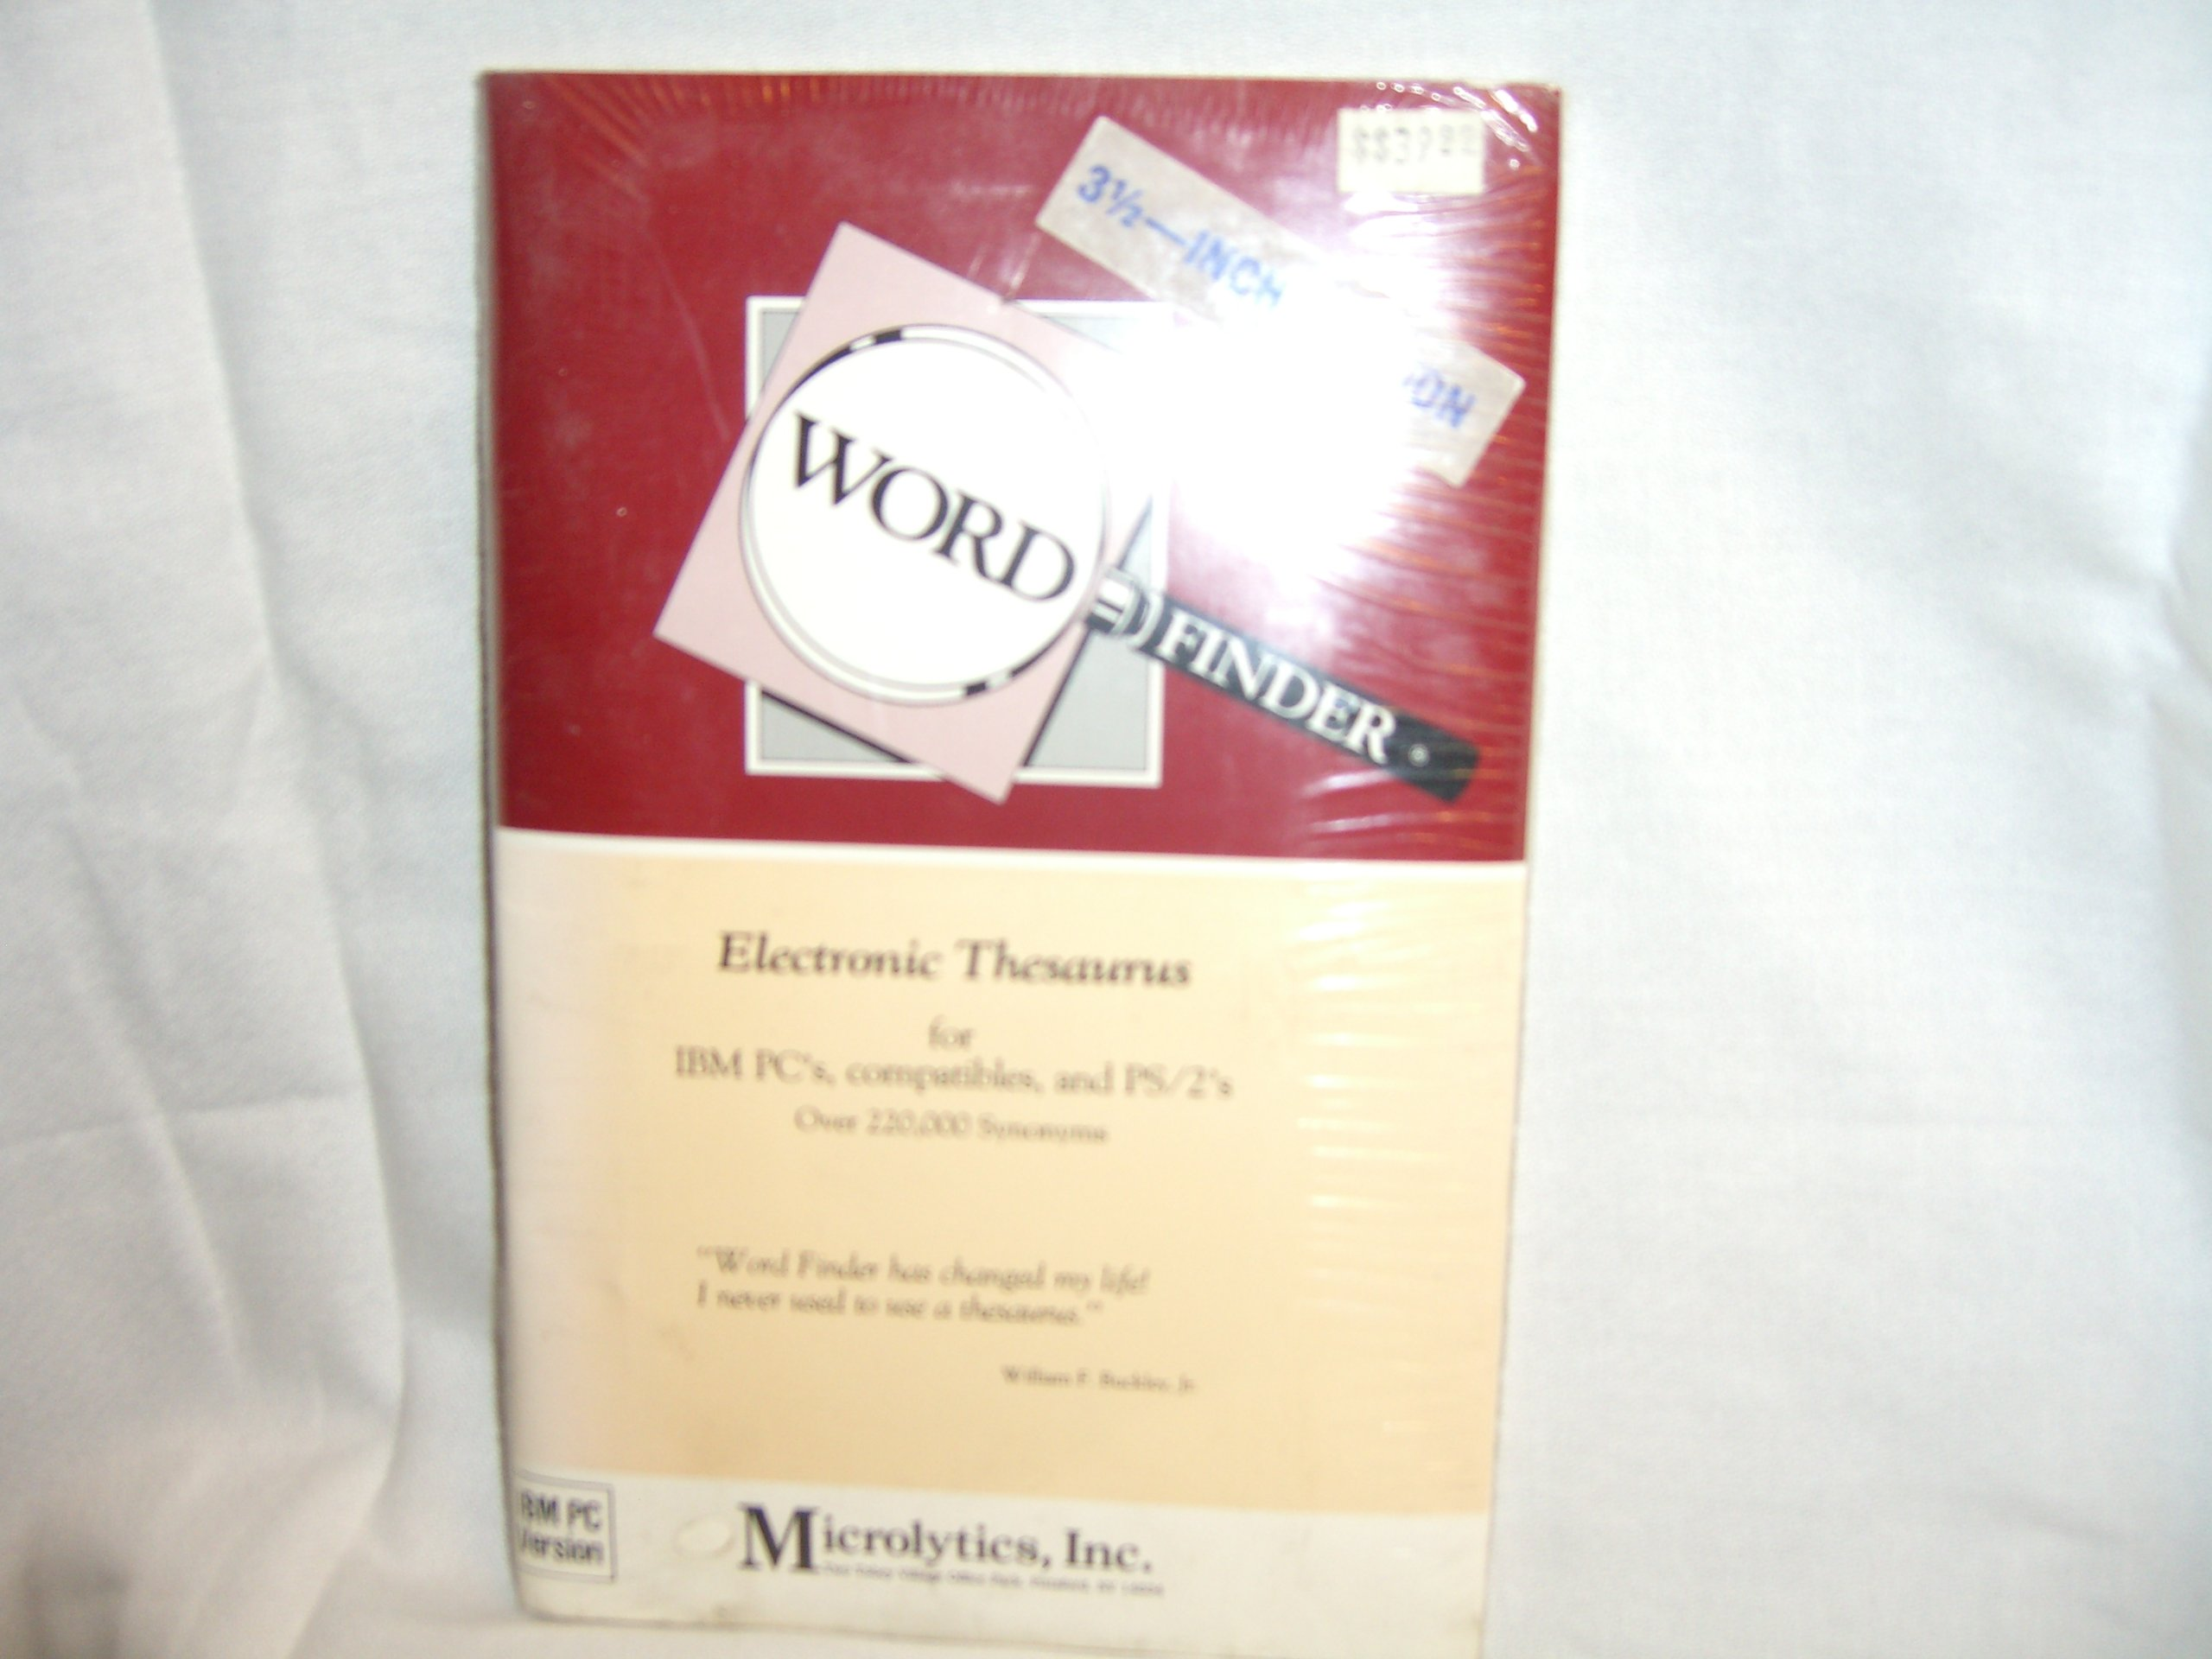 Word Finder Electronic Thesaurus